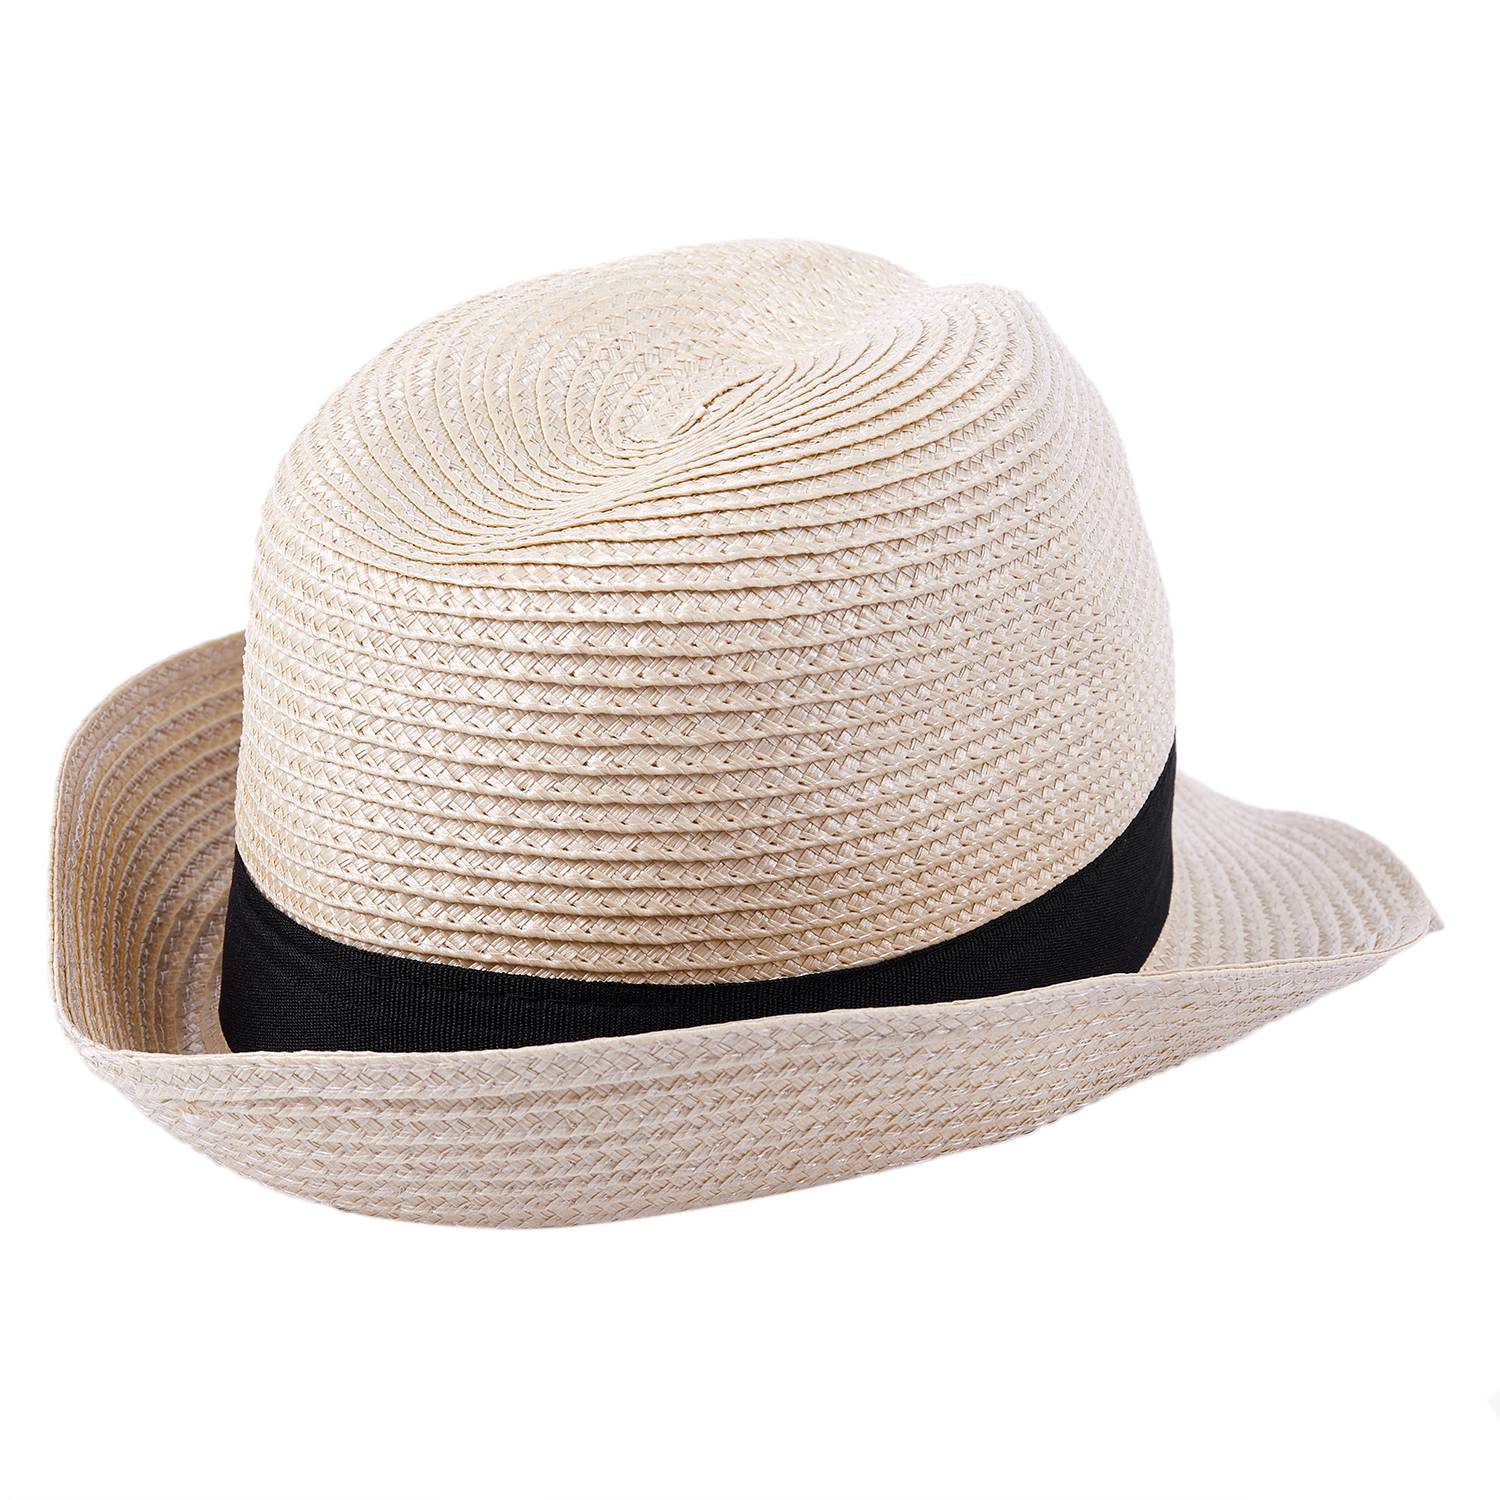 B3 Wholesale Straw Hat - Trilby Style Crushable Summer Sun ...